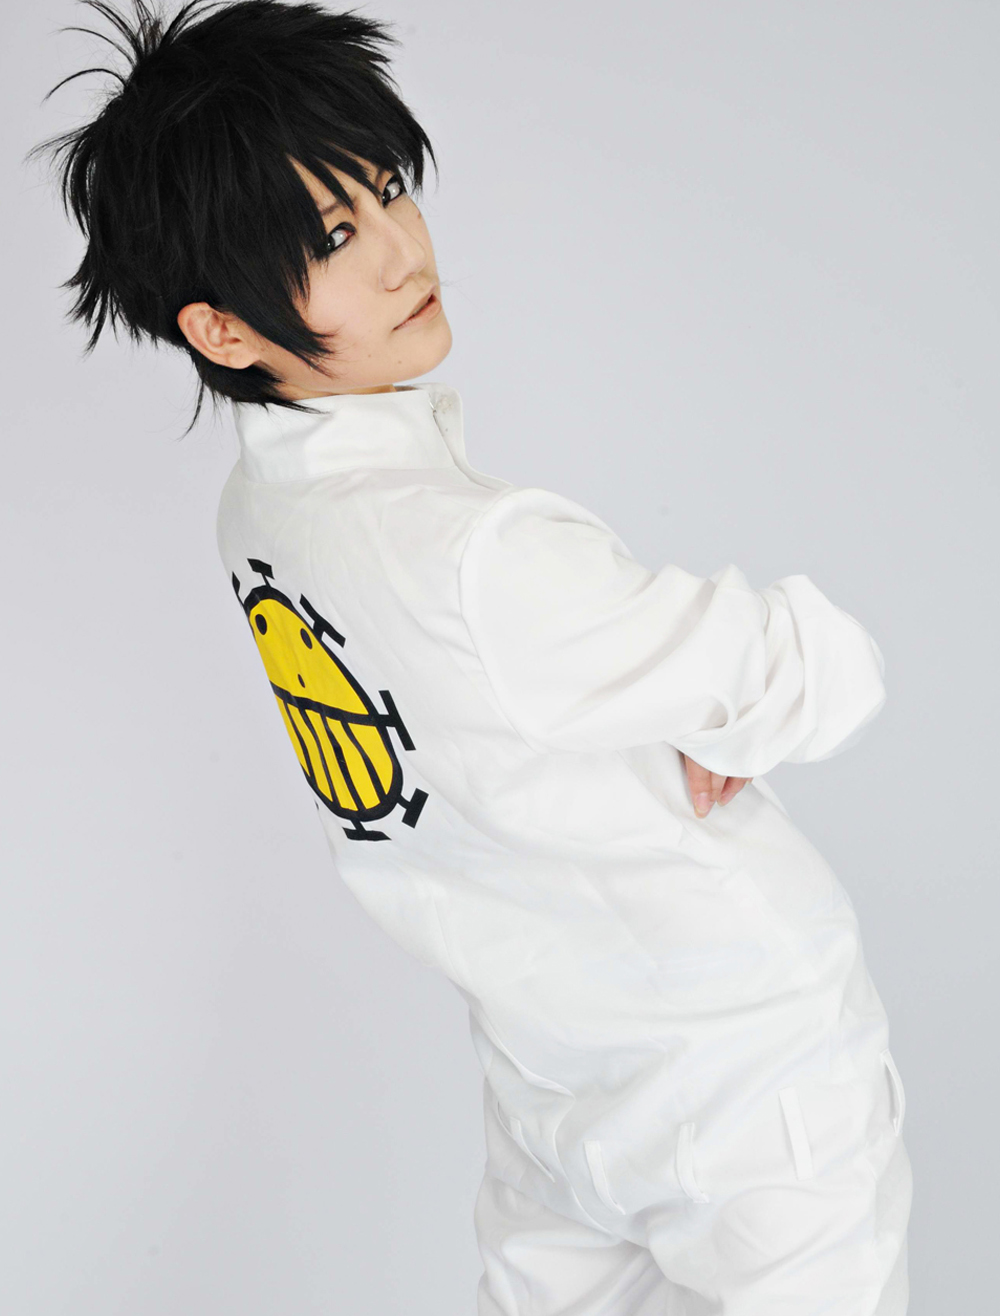 One Piece Heart Pirates White Uniform Cosplay Costume